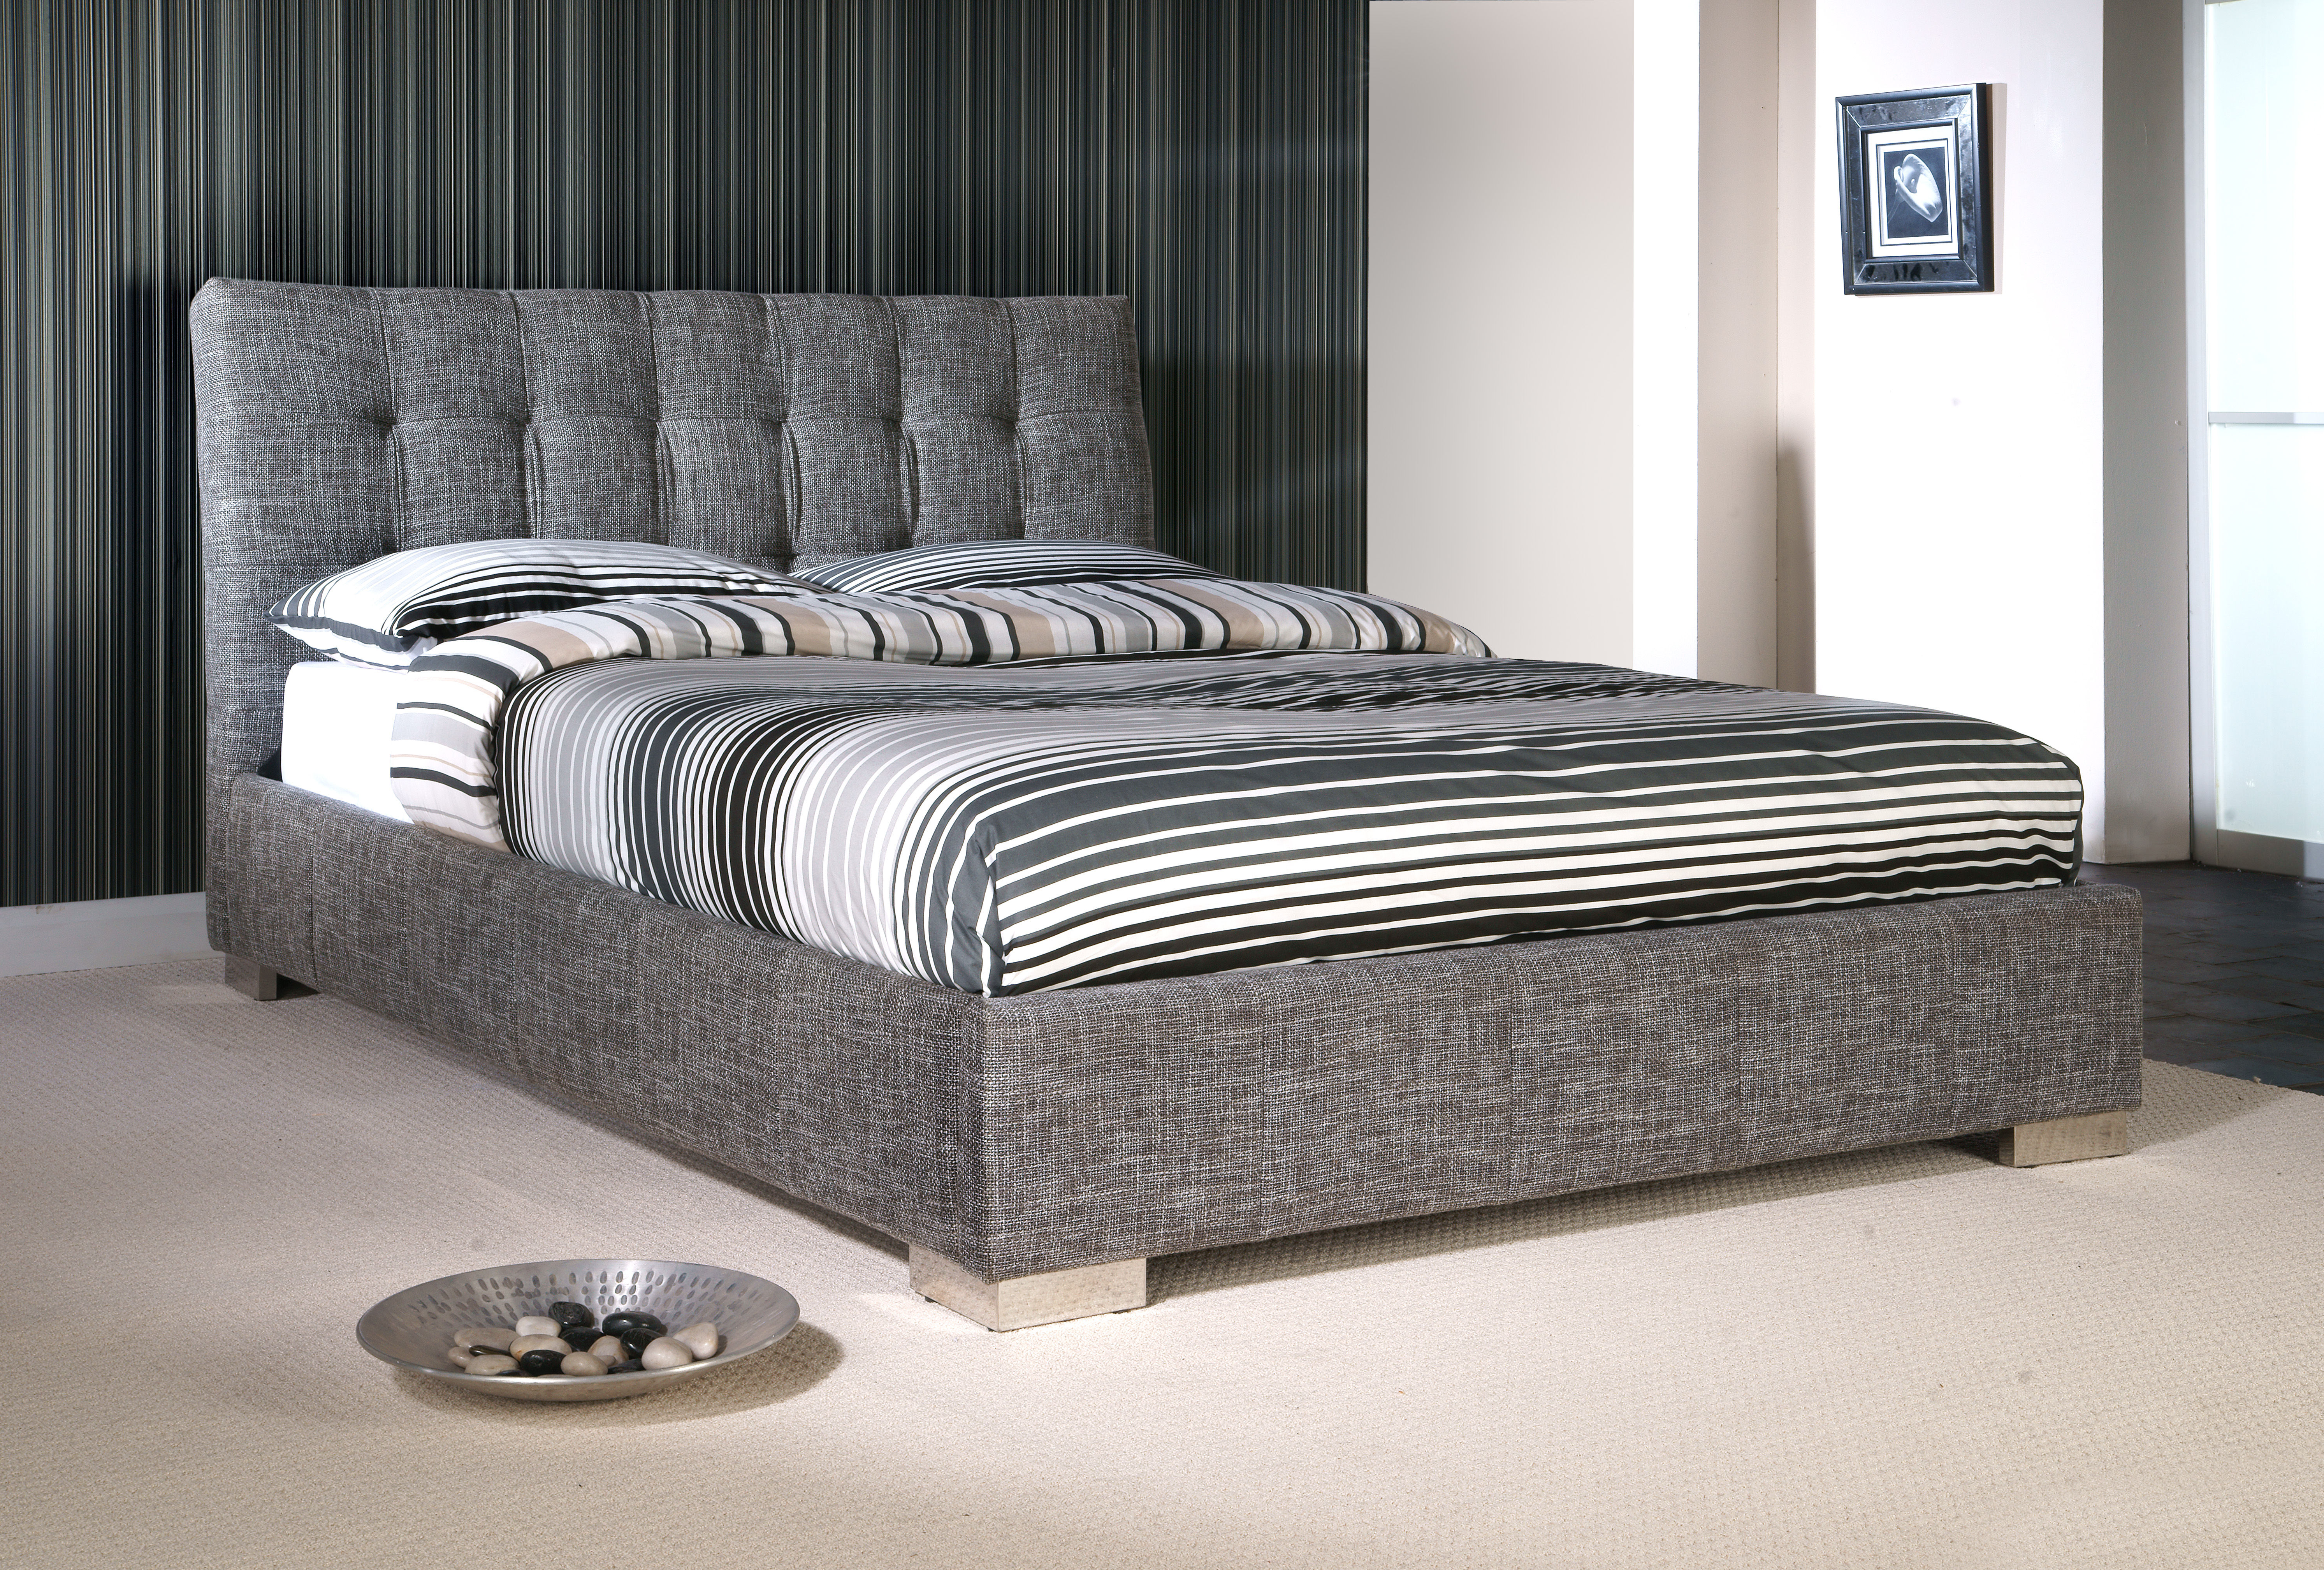 mattresses sleep product woodland it on divan fabric affordable beds just bed